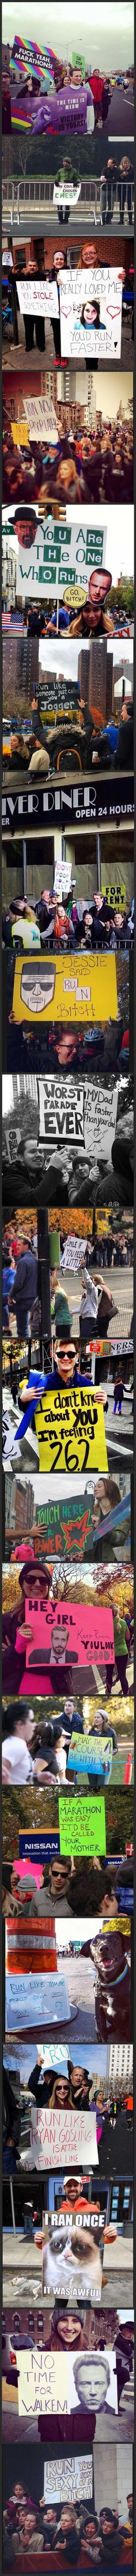 The best of the NYC marathon signs...